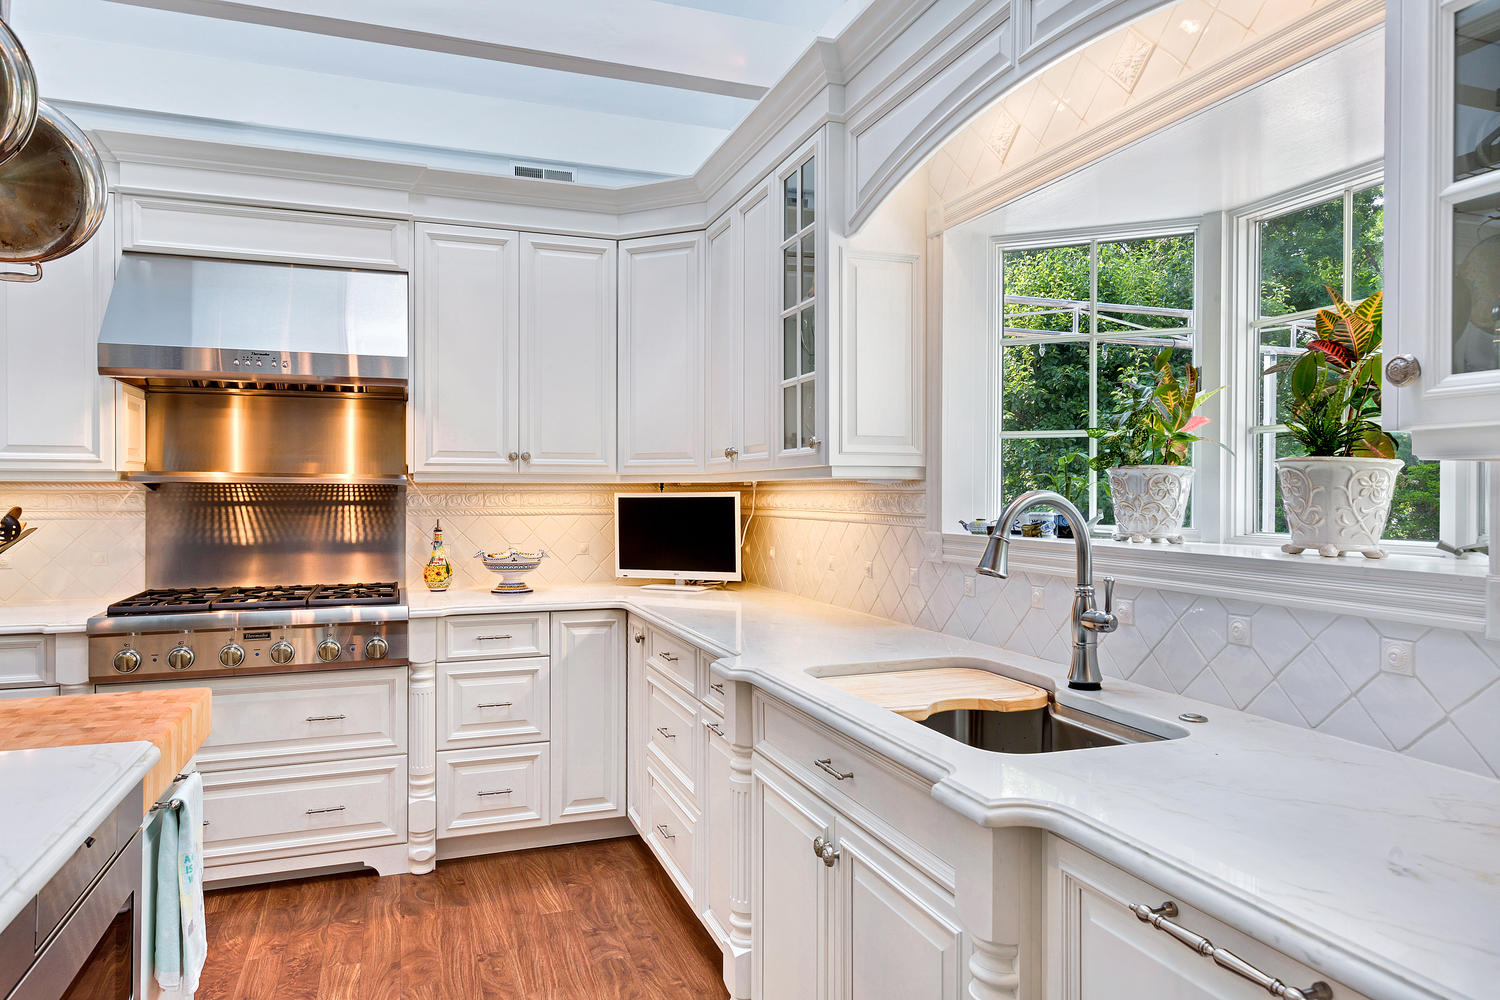 Backsplash For White Kitchen Cabinets Luxury White Kitchen Avon Nj By Design Line Kitchens